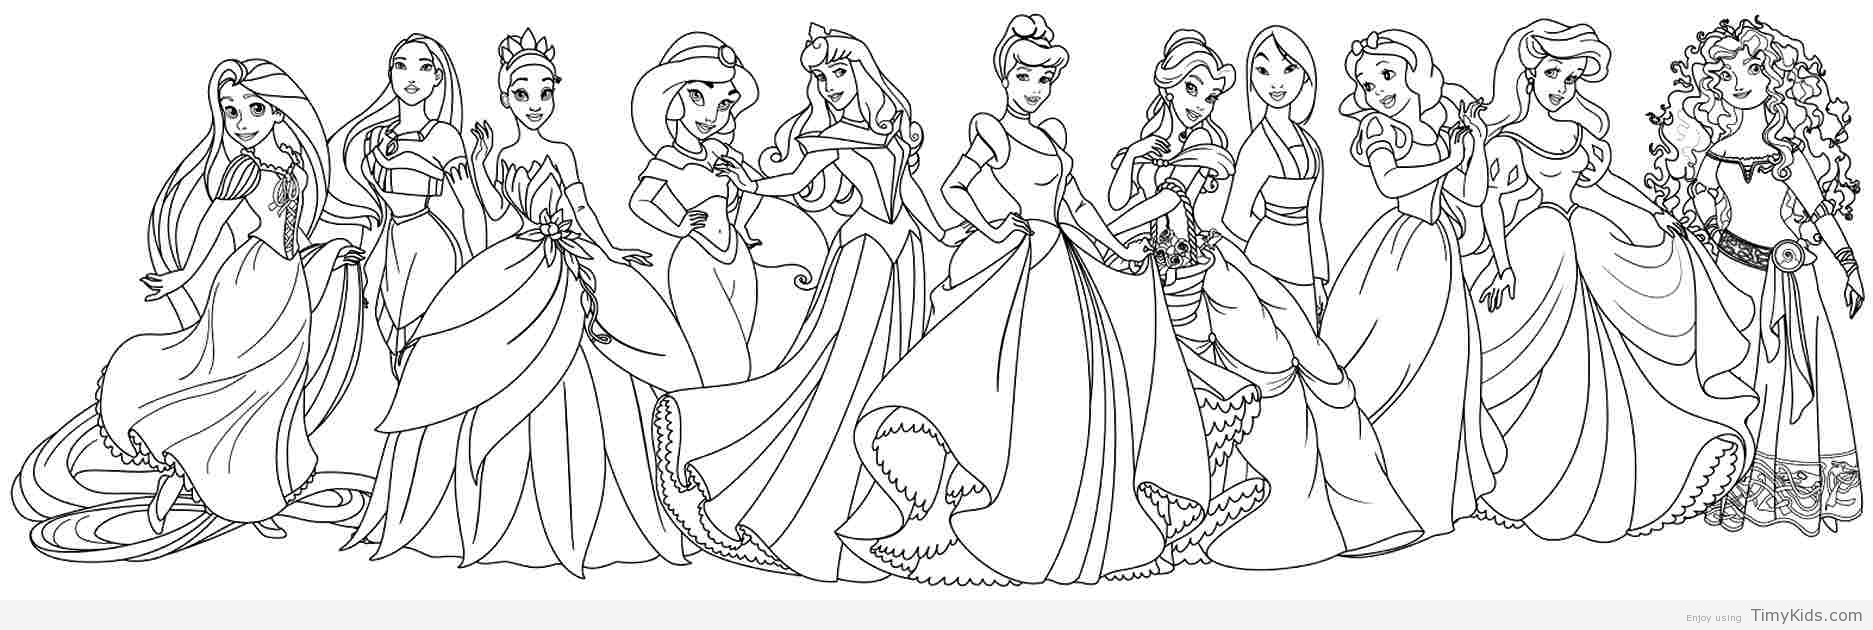 - Disney Princess Coloring Pages – Coloring.rocks!